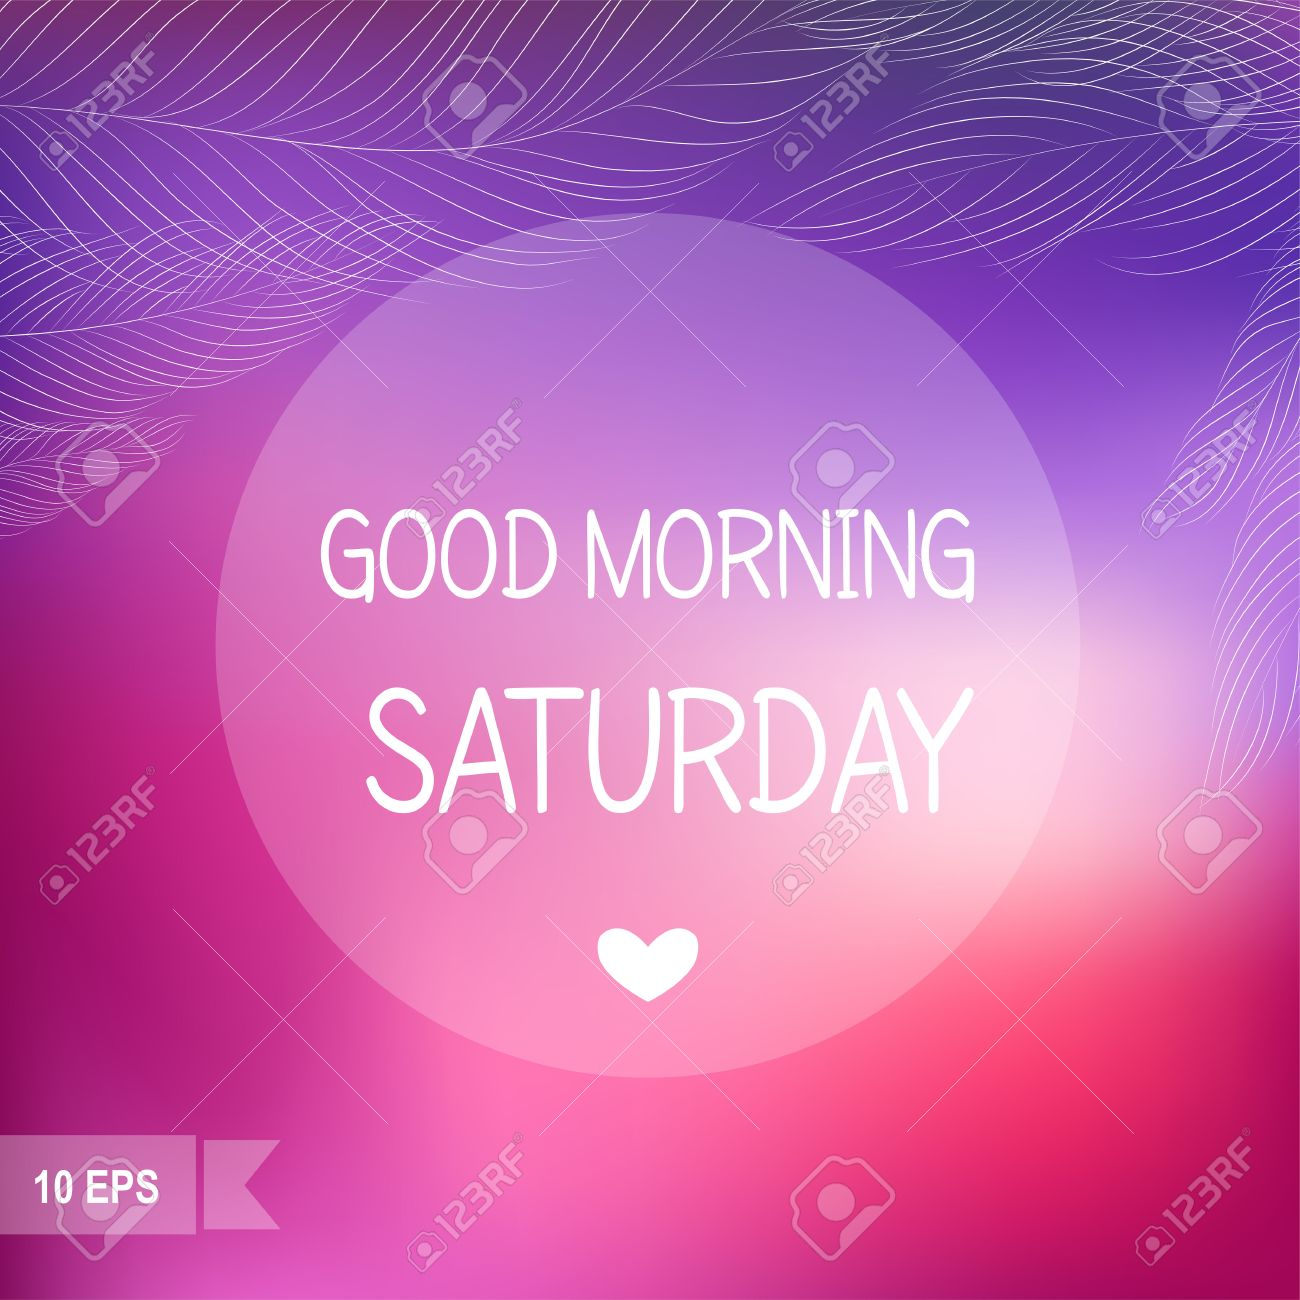 morning on a saturday Most weekdays i have difficulty discerning whether its day or night went out to eat dinner with the family it was fun talked a bit play with my cat and then coded a ton i'm proud of what i got done today the interesting part tomorrow and sunday should be super productive.